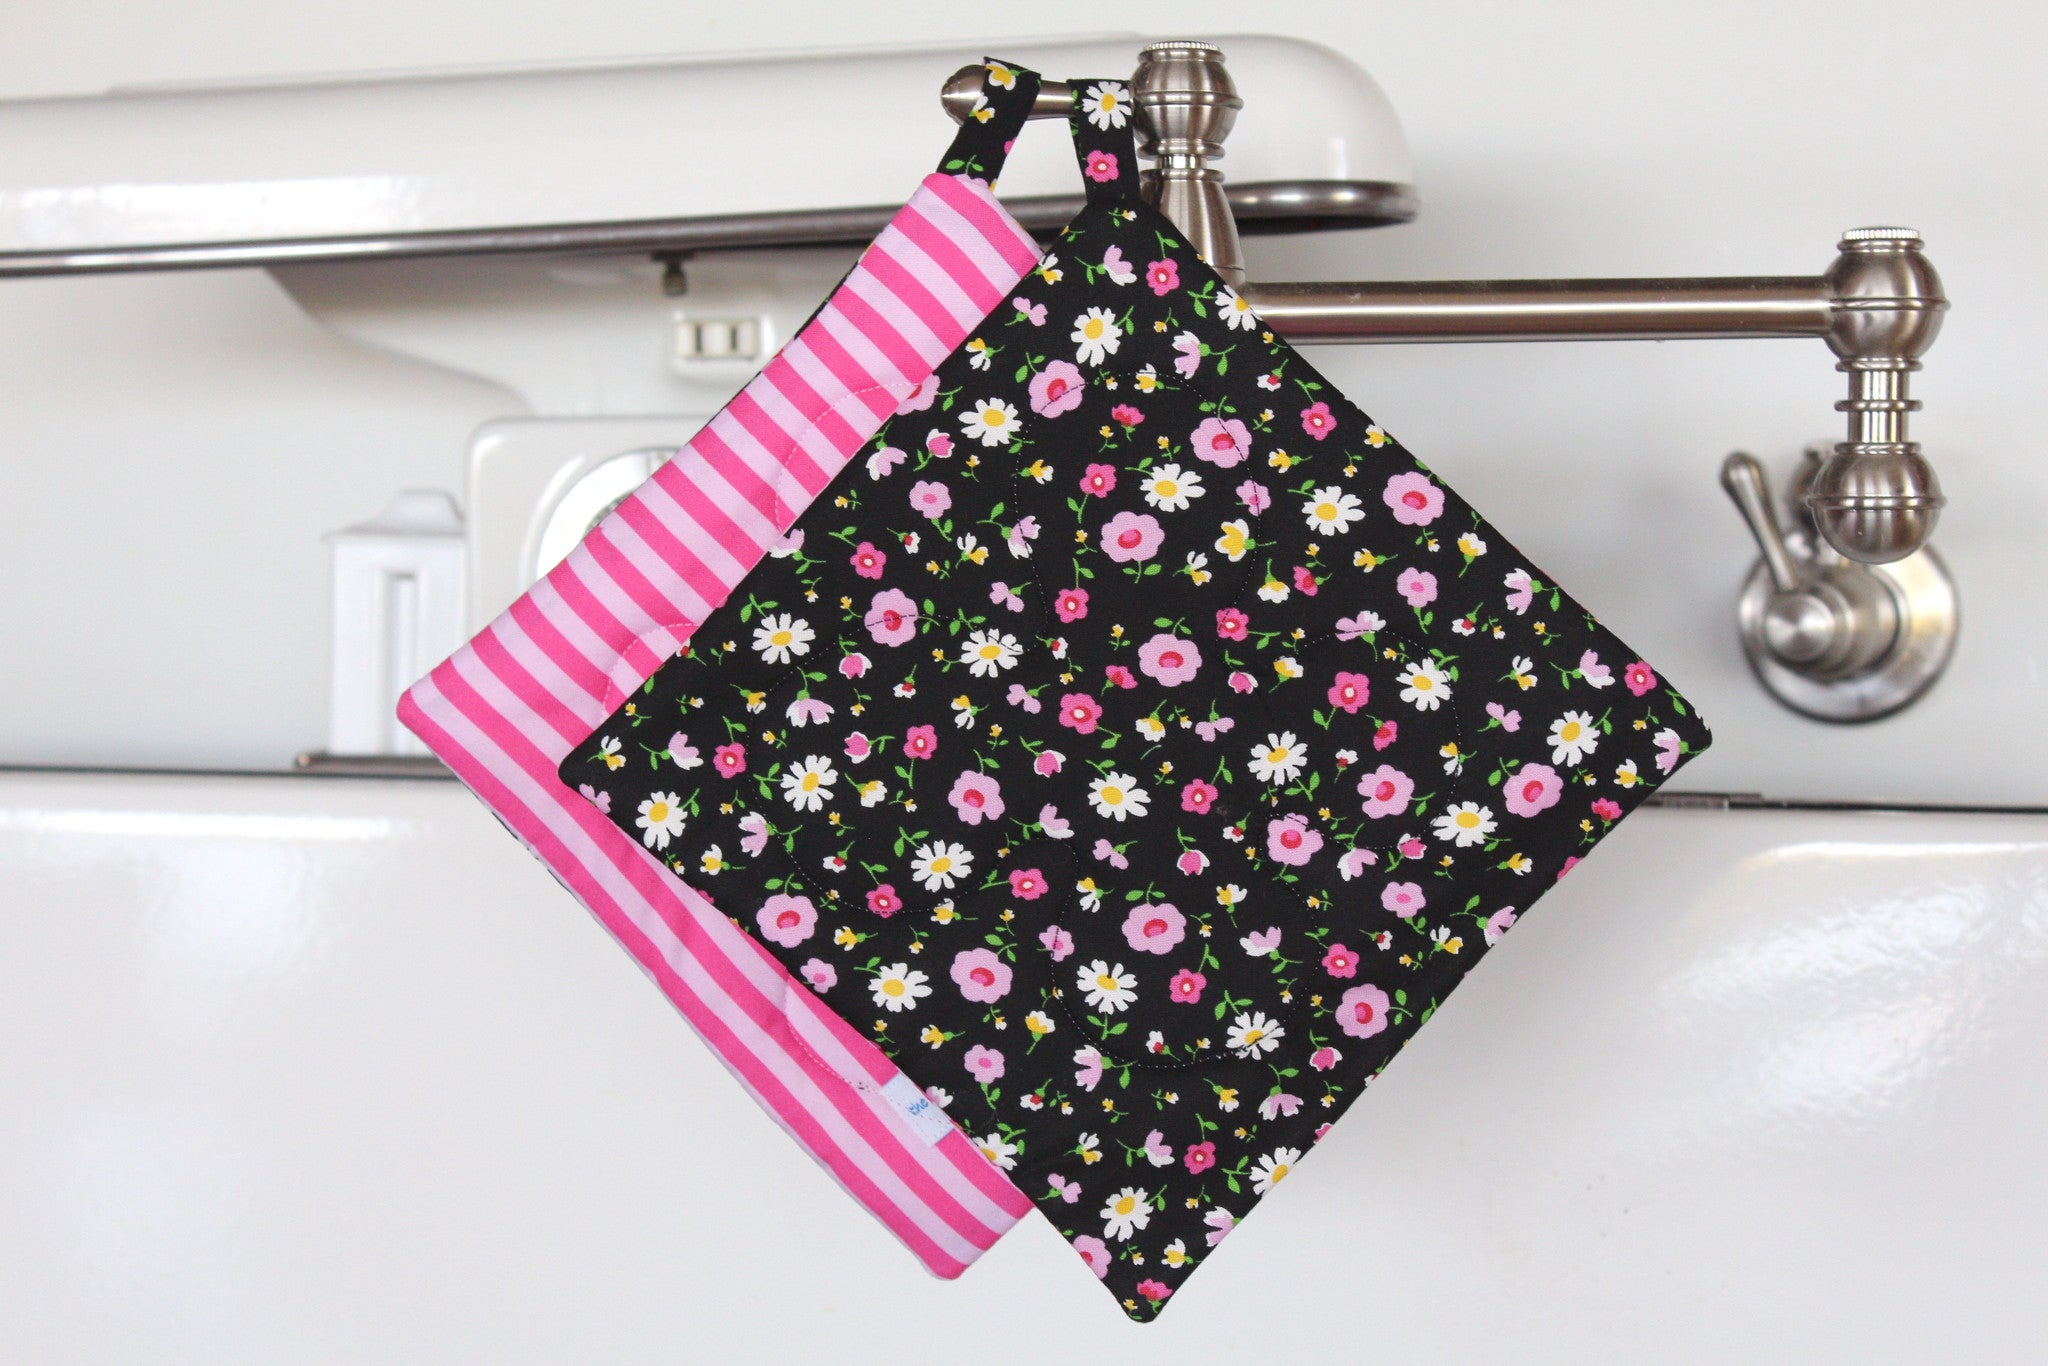 Rose Garden Potholder - Black